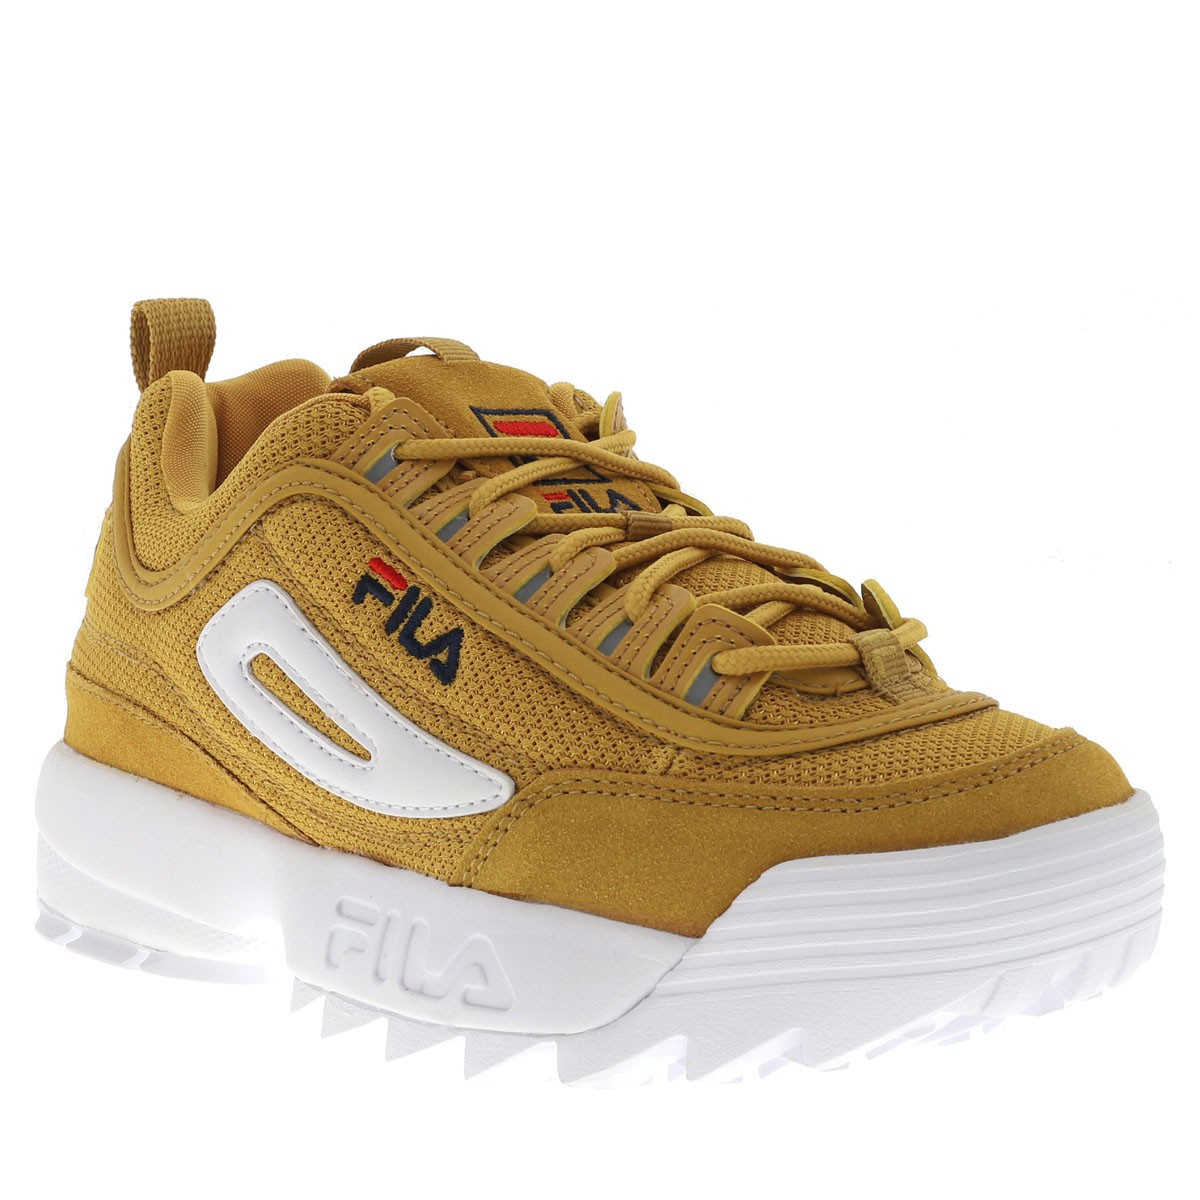 Orange Baskets Fila Ccv Femme Mode Disruptor Wydi2h9e vN80wmn